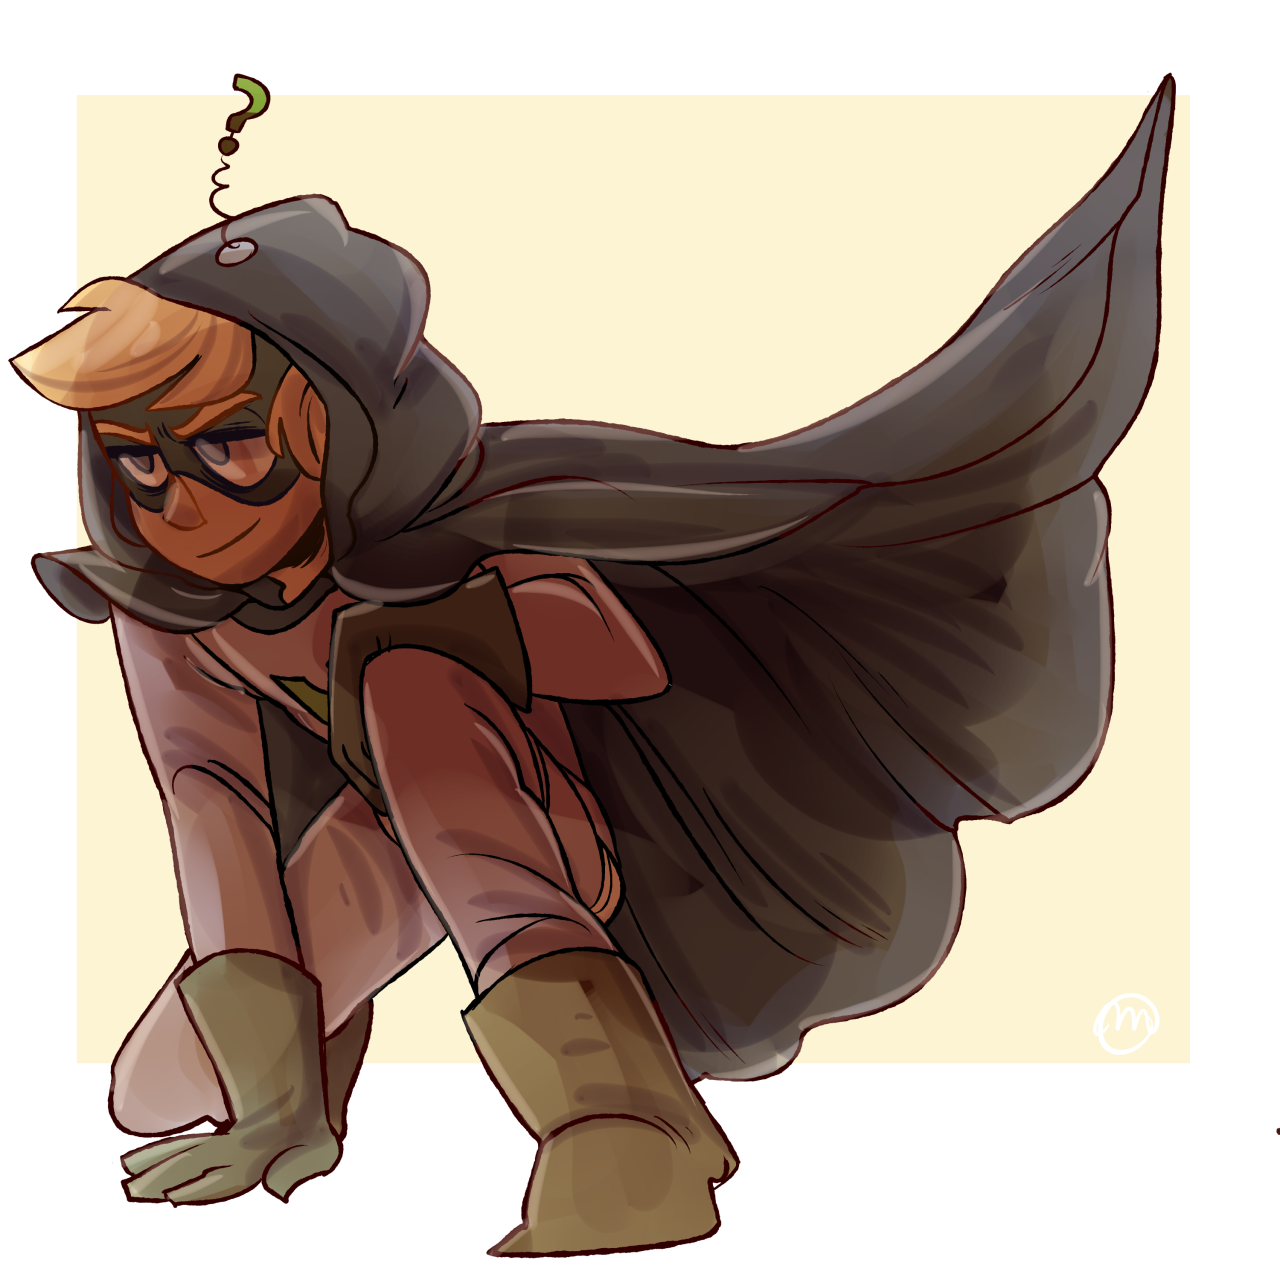 Art trade with @itsnotbeau!!! I've never drawn Mysterion